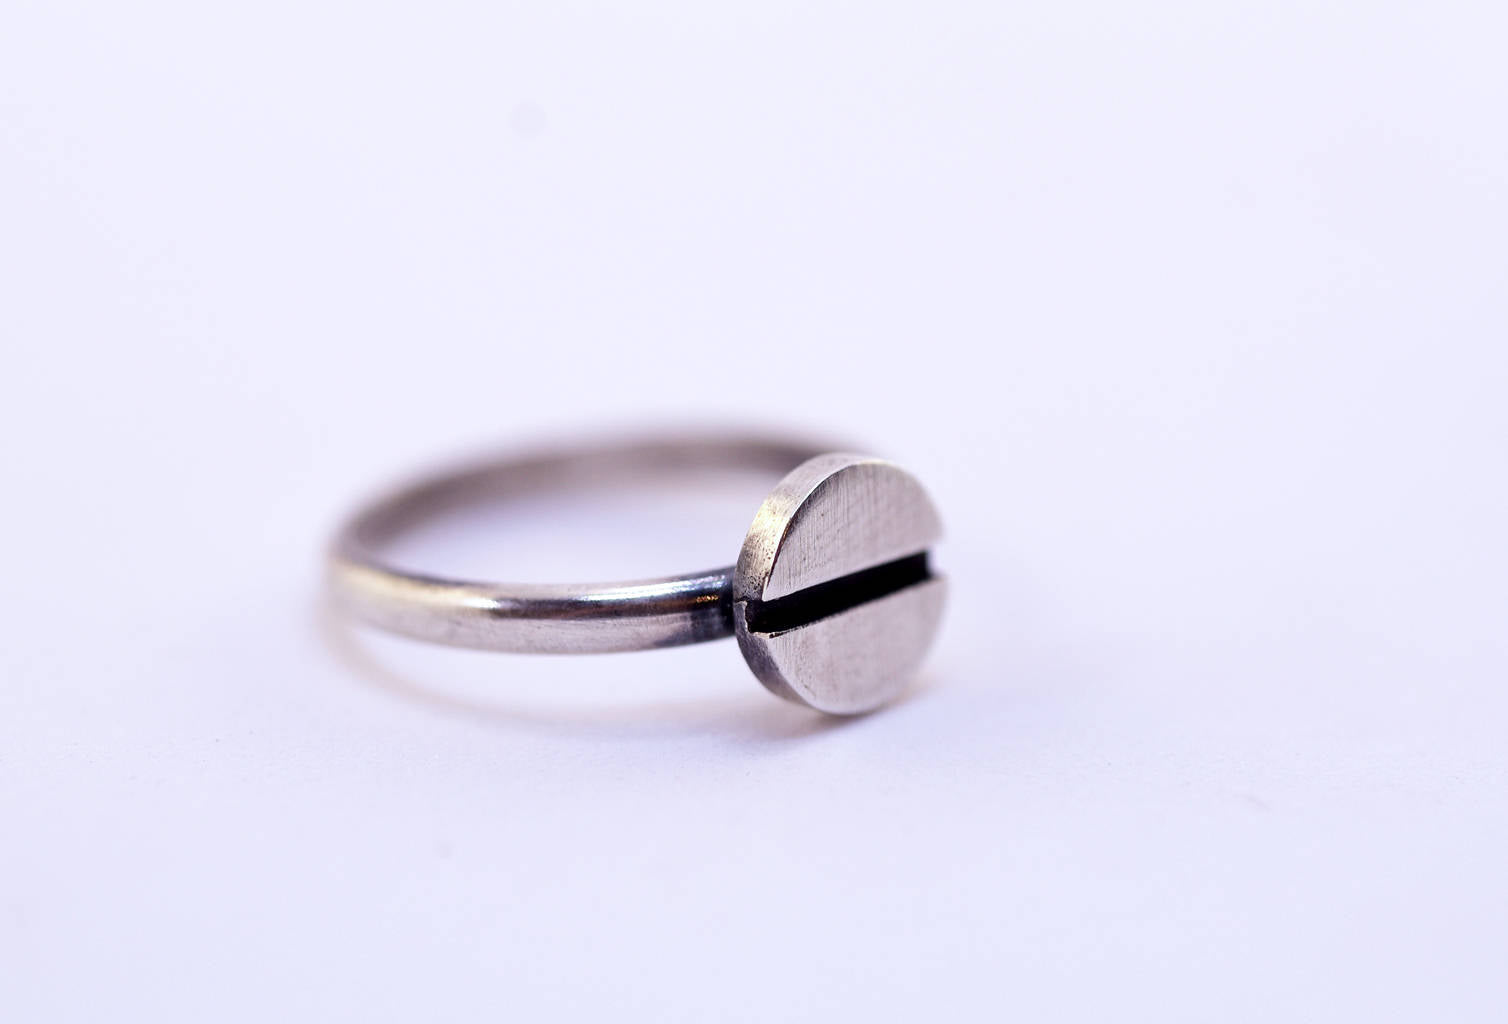 Precision mechanics-Screw-Silver-Ring